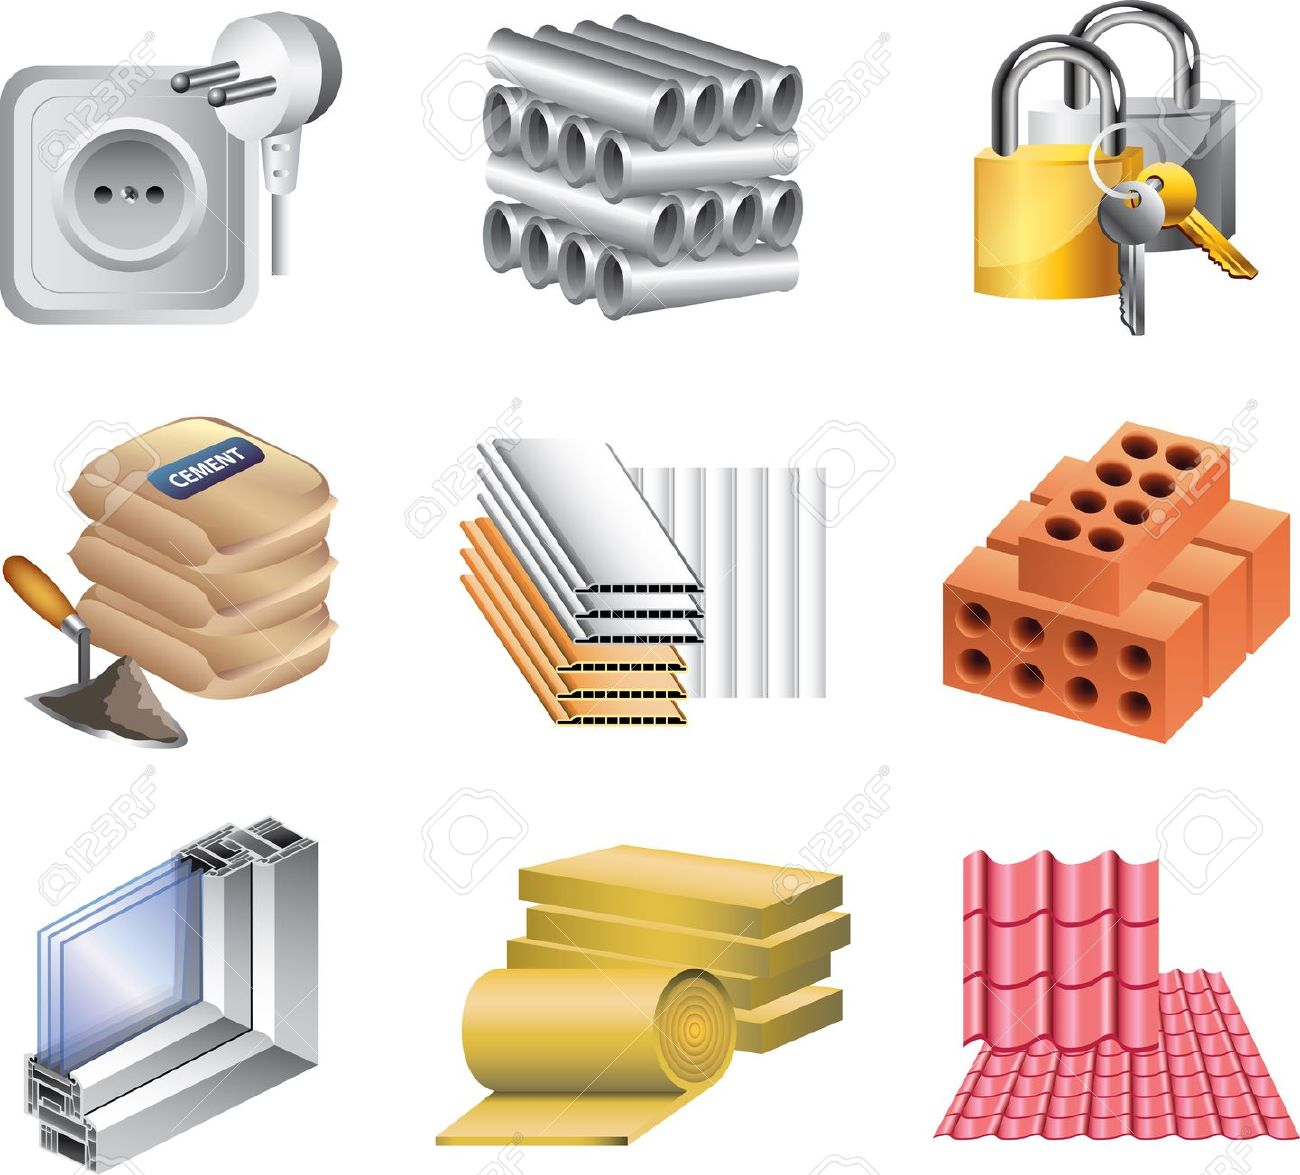 Brick clipart well Roofing art Search clip Search